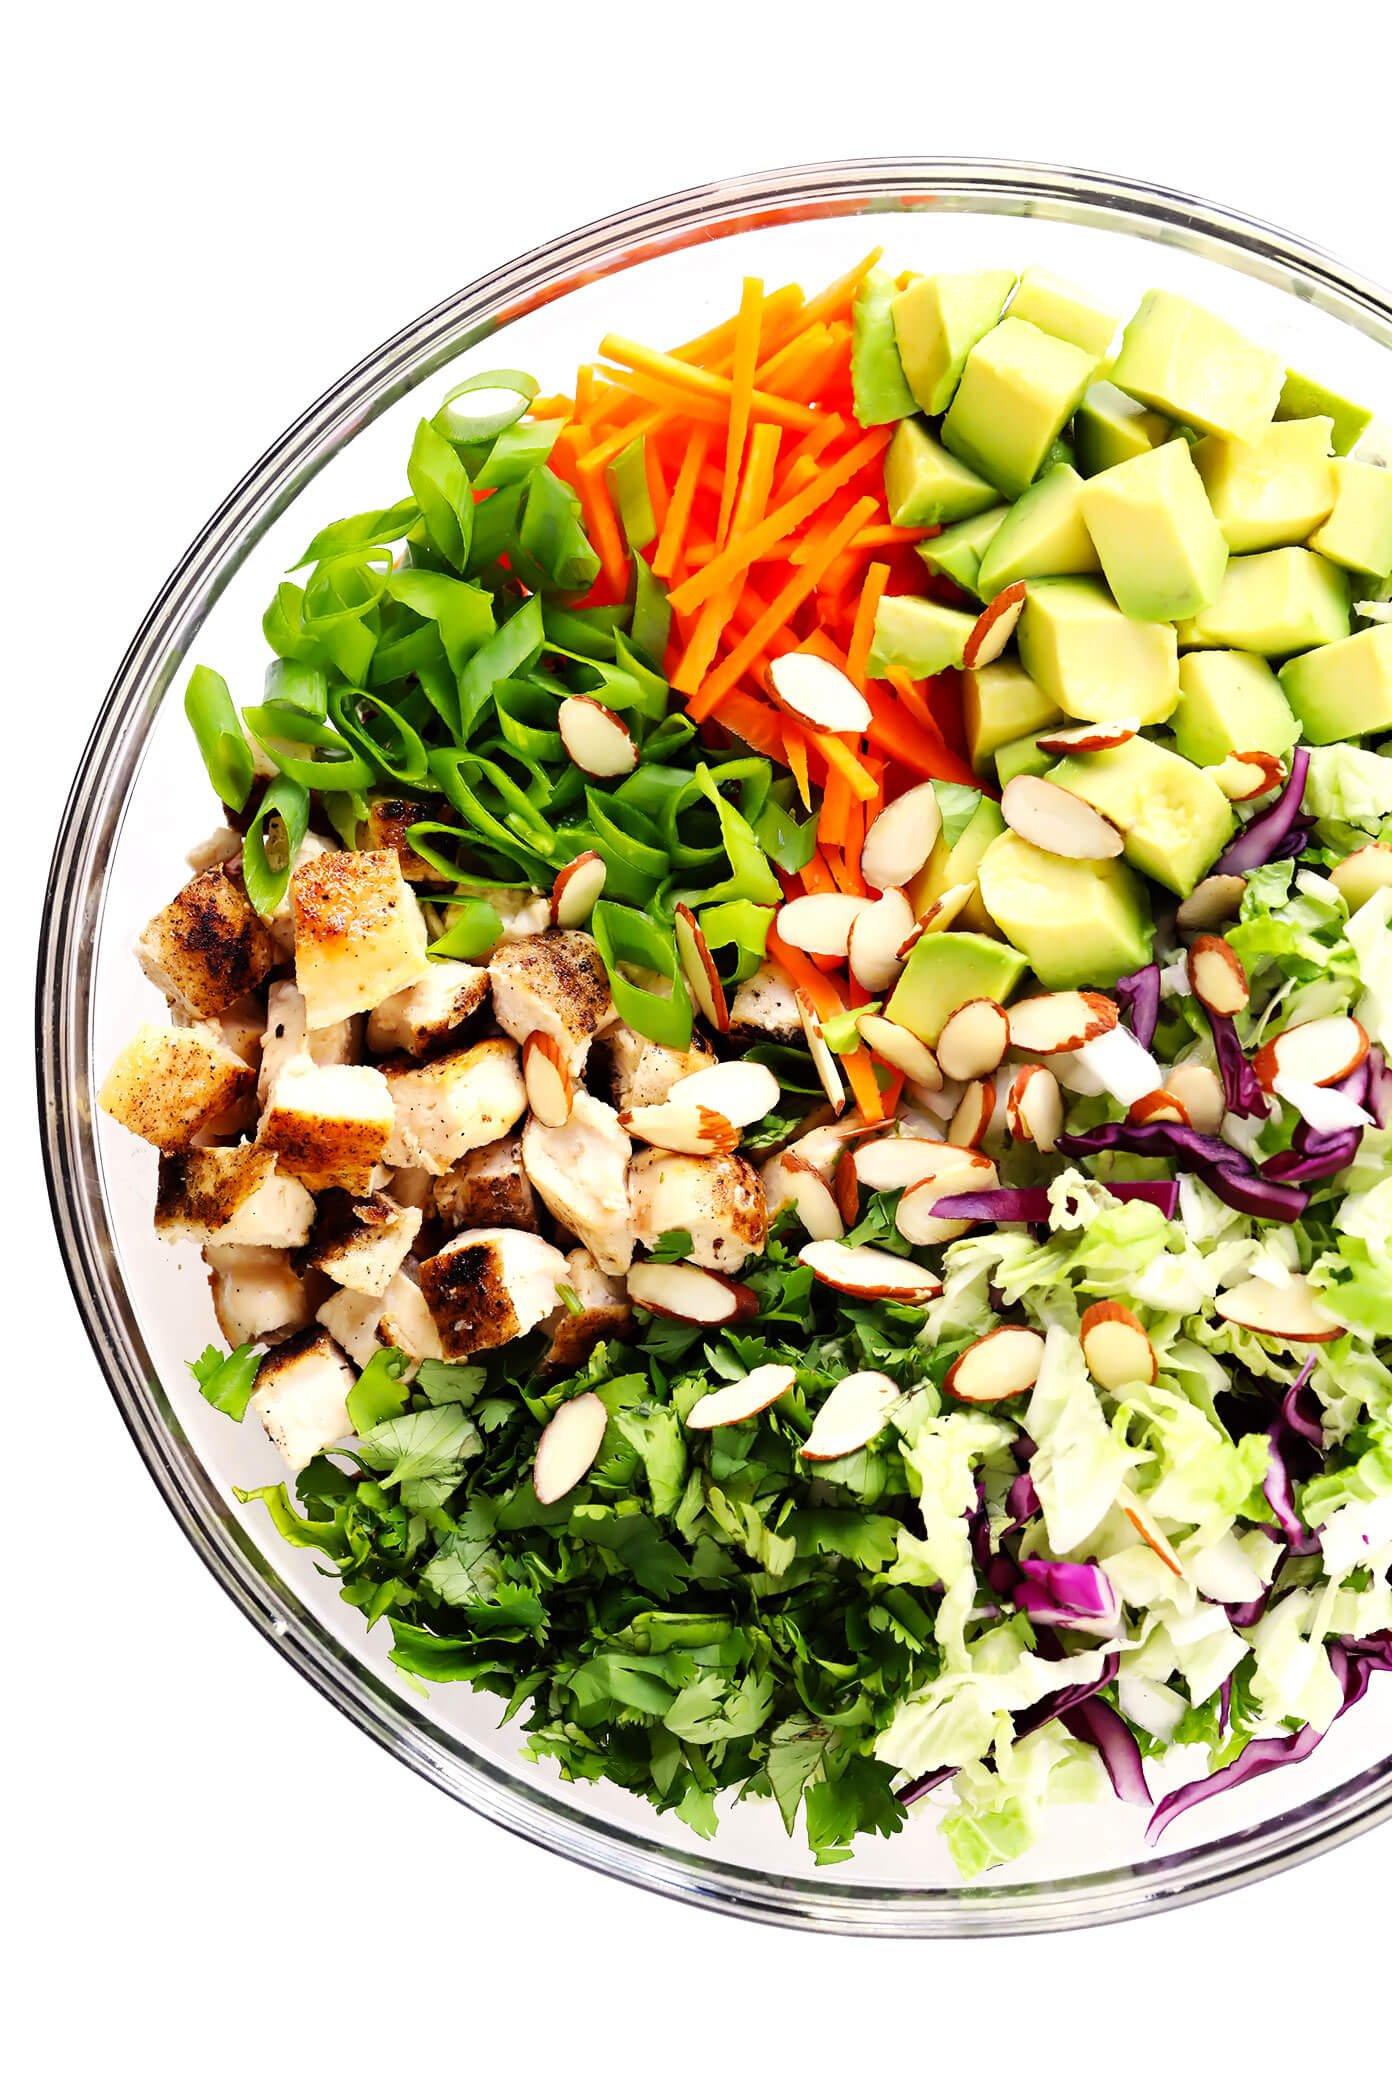 Sesame Chicken Salad Ingredients (Baked Chicken, Green Onions, Carrots, Cilantro, Cole Slaw, Avocado and Toasted Almonds)